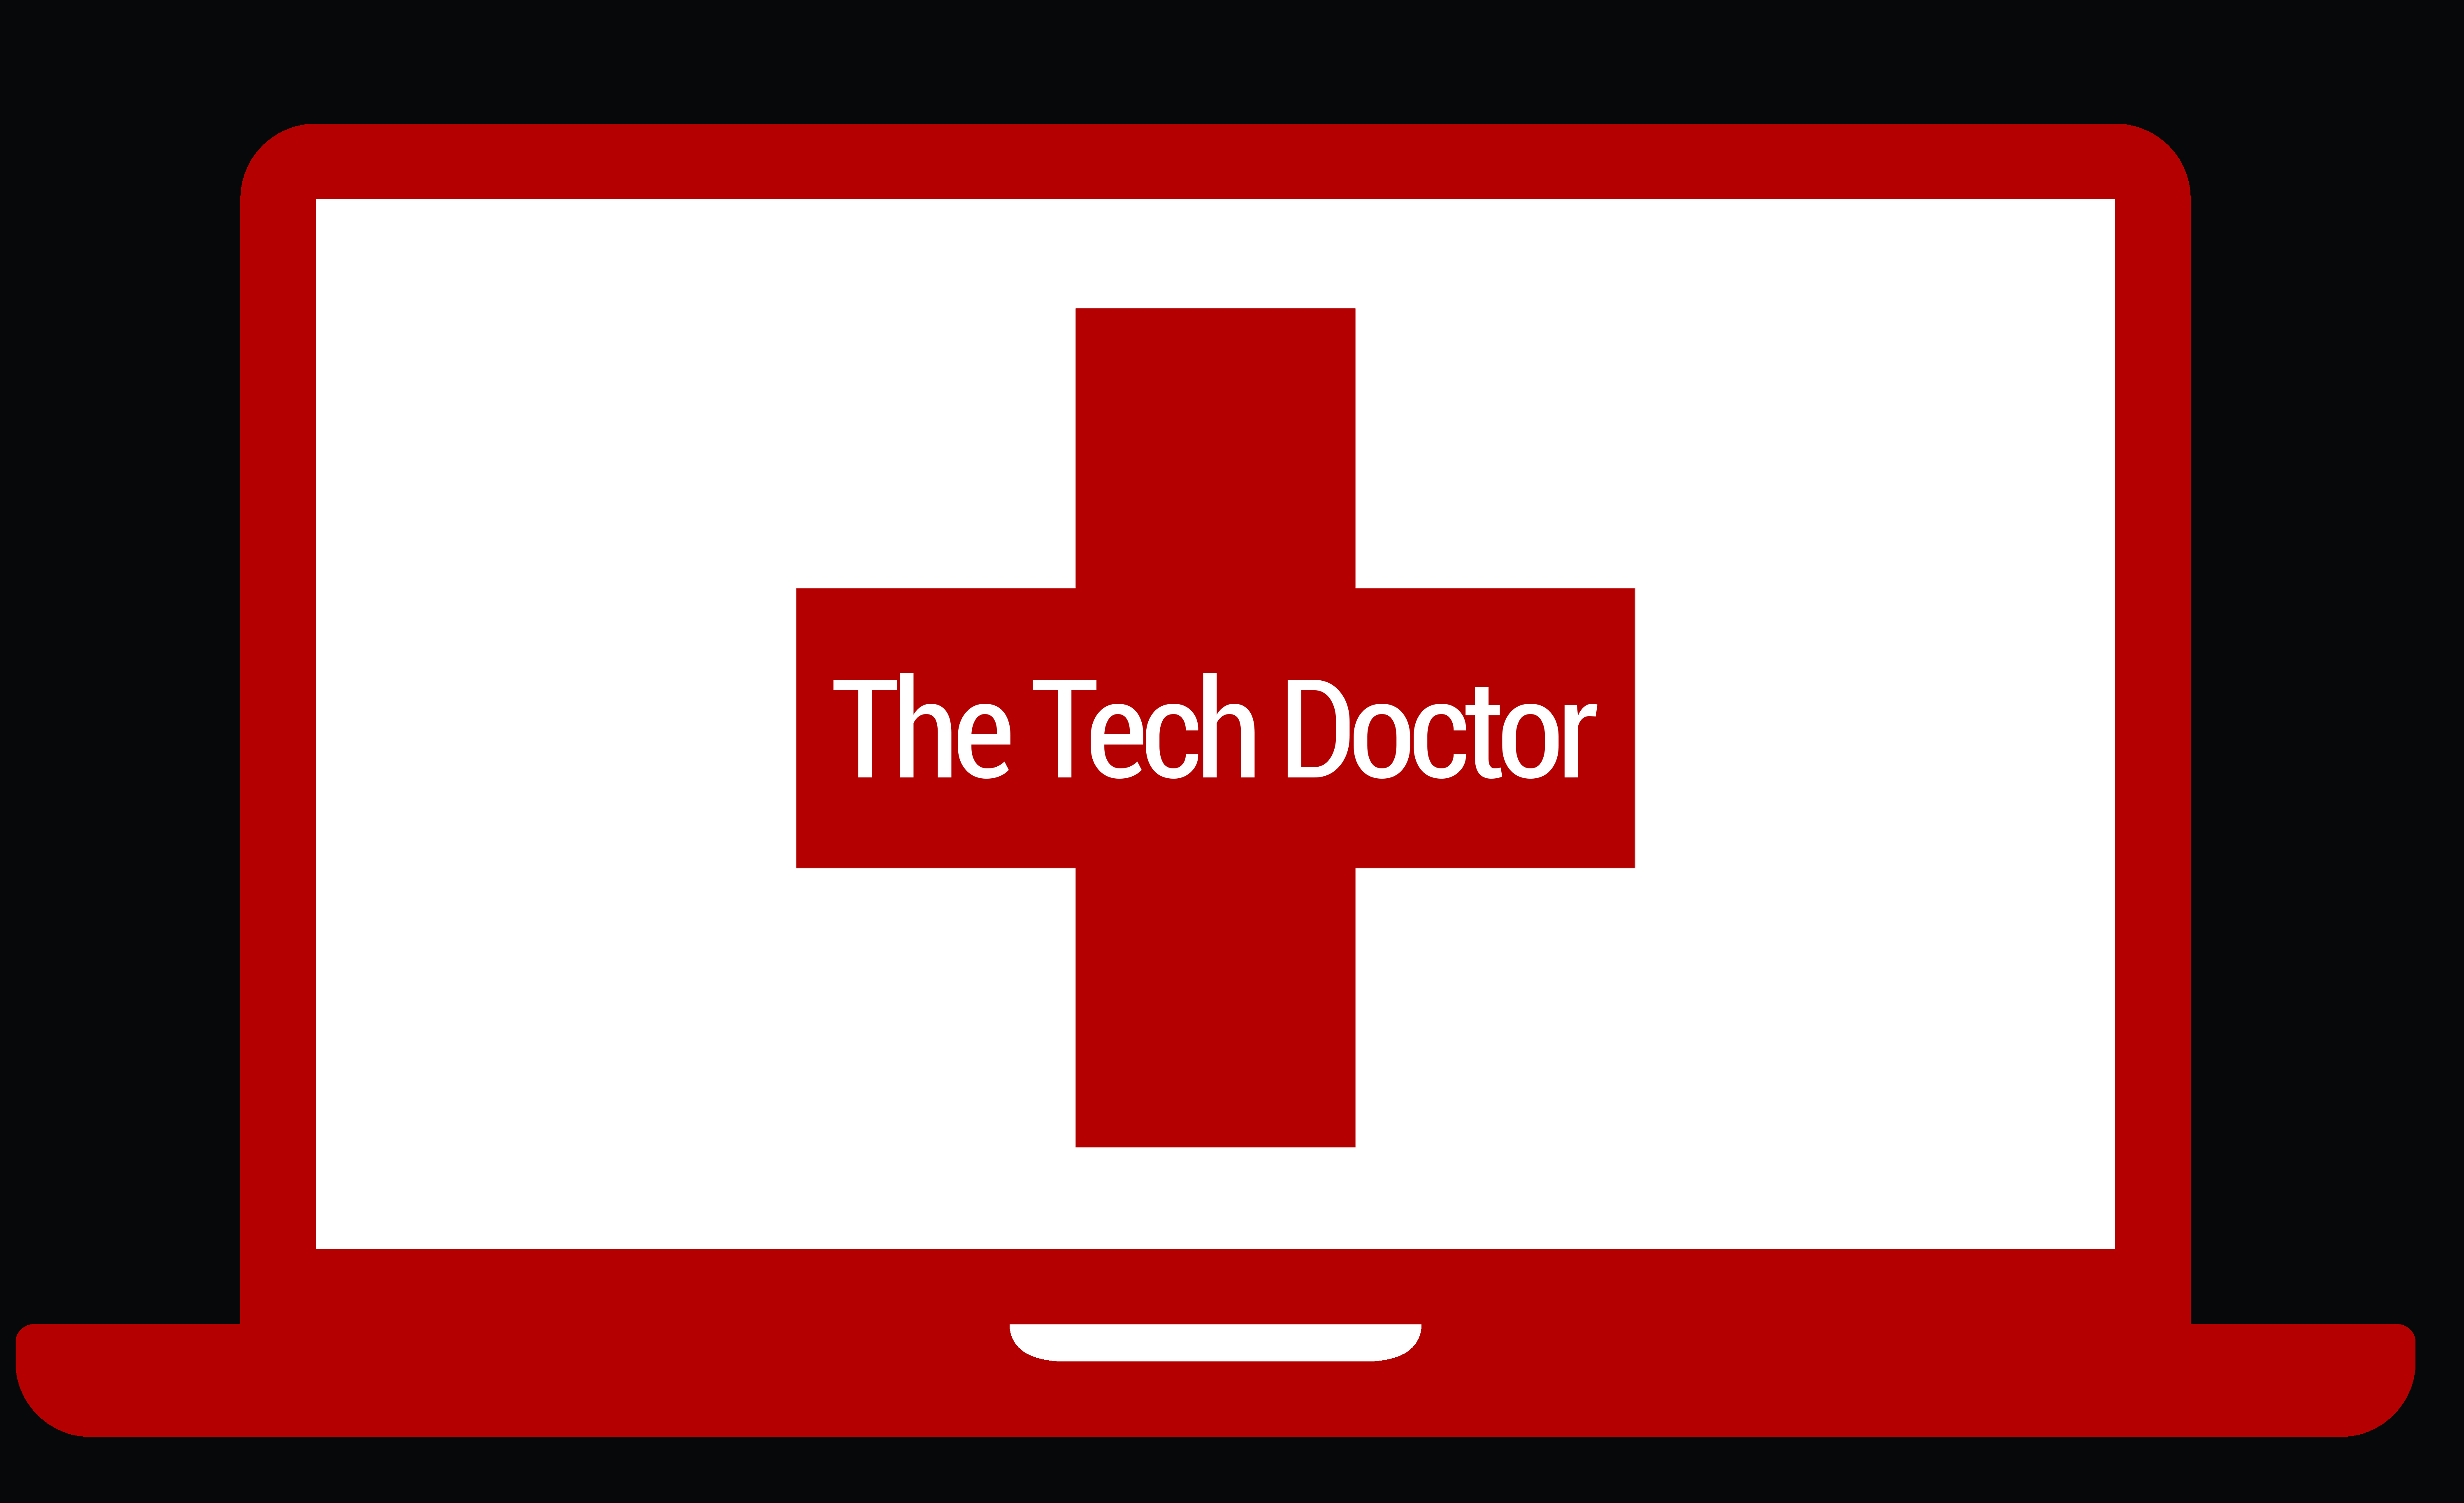 The Tech Doctor